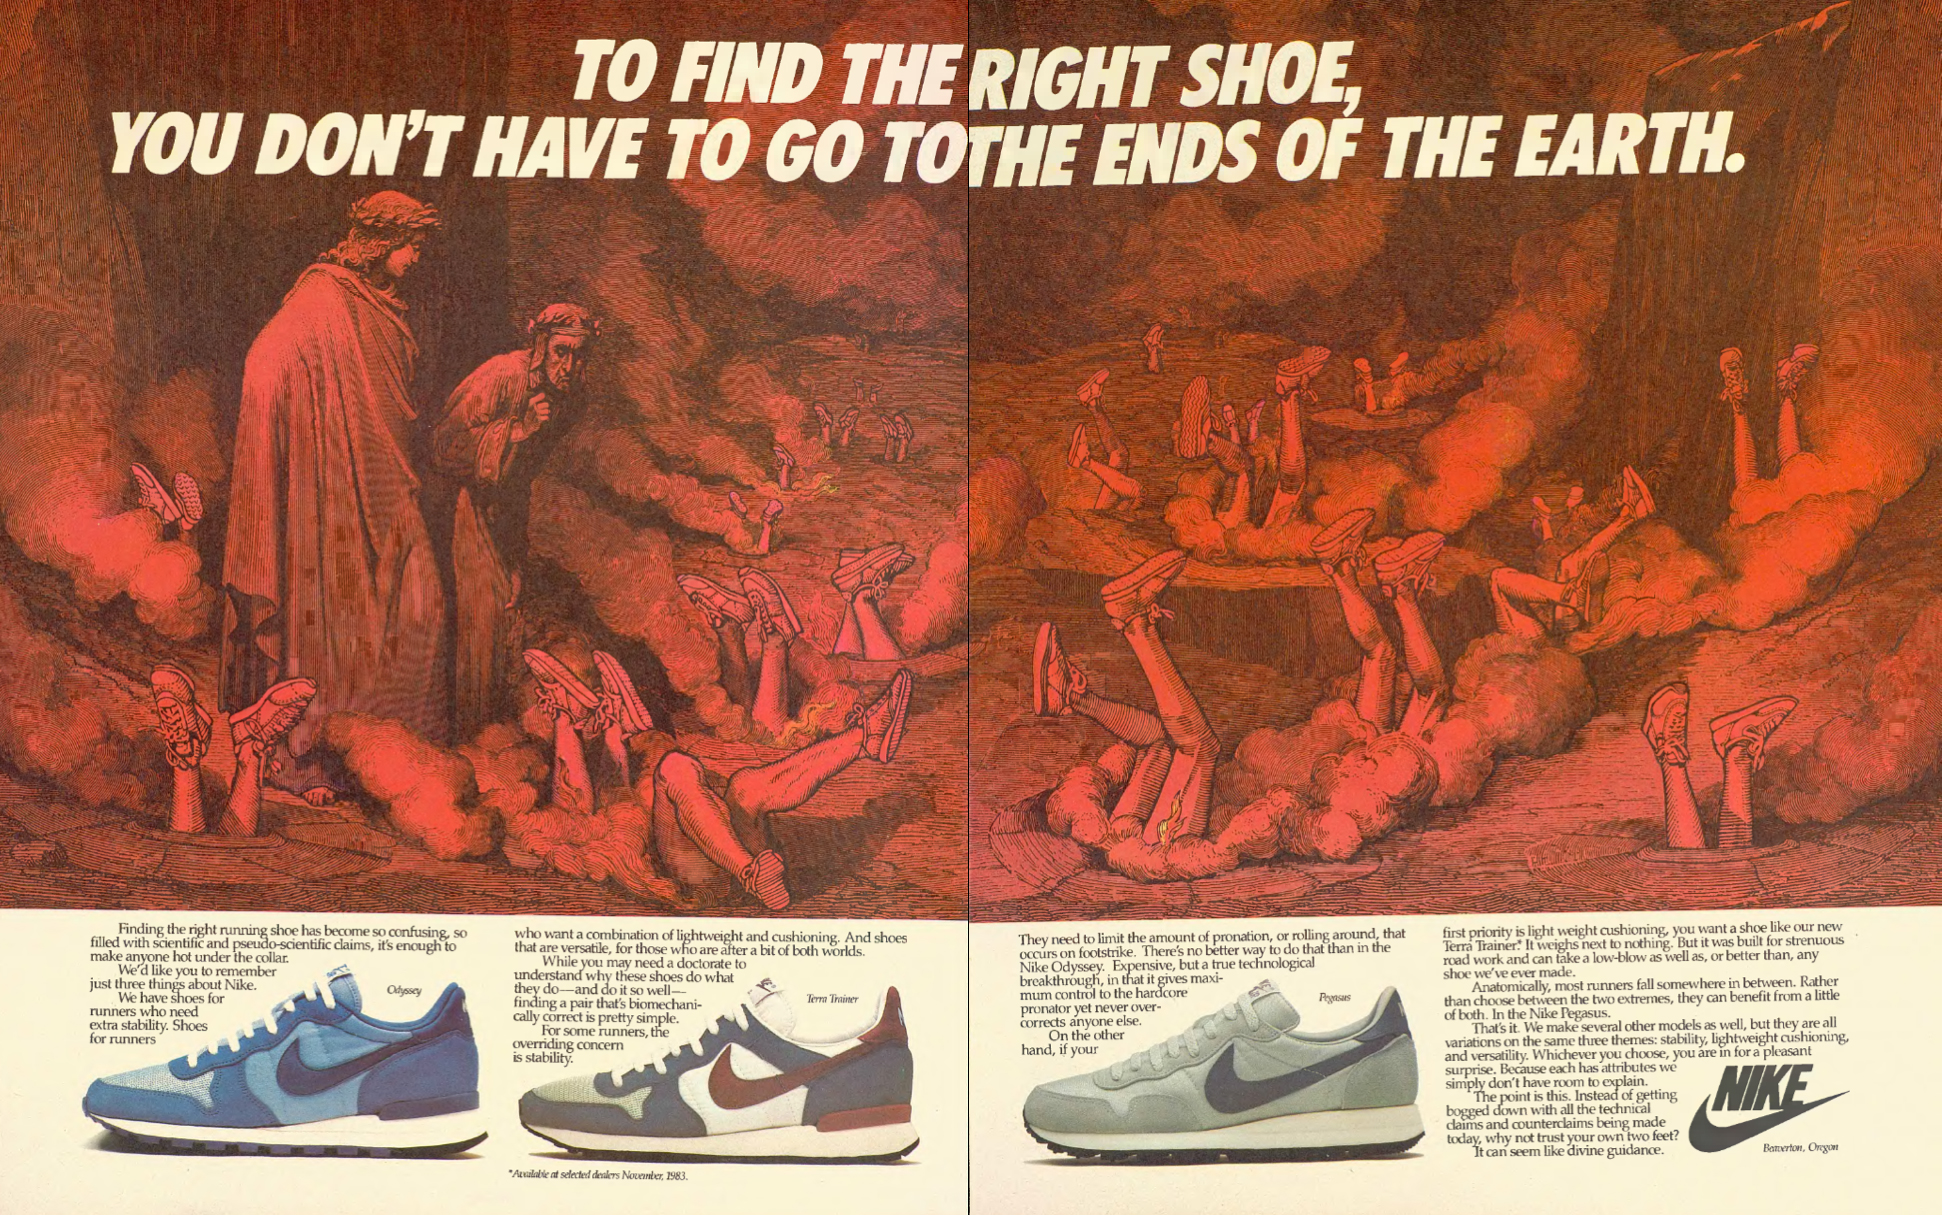 This NIKE advertisement reminded me of visiting the medieval wing of a European art gallery (1983).